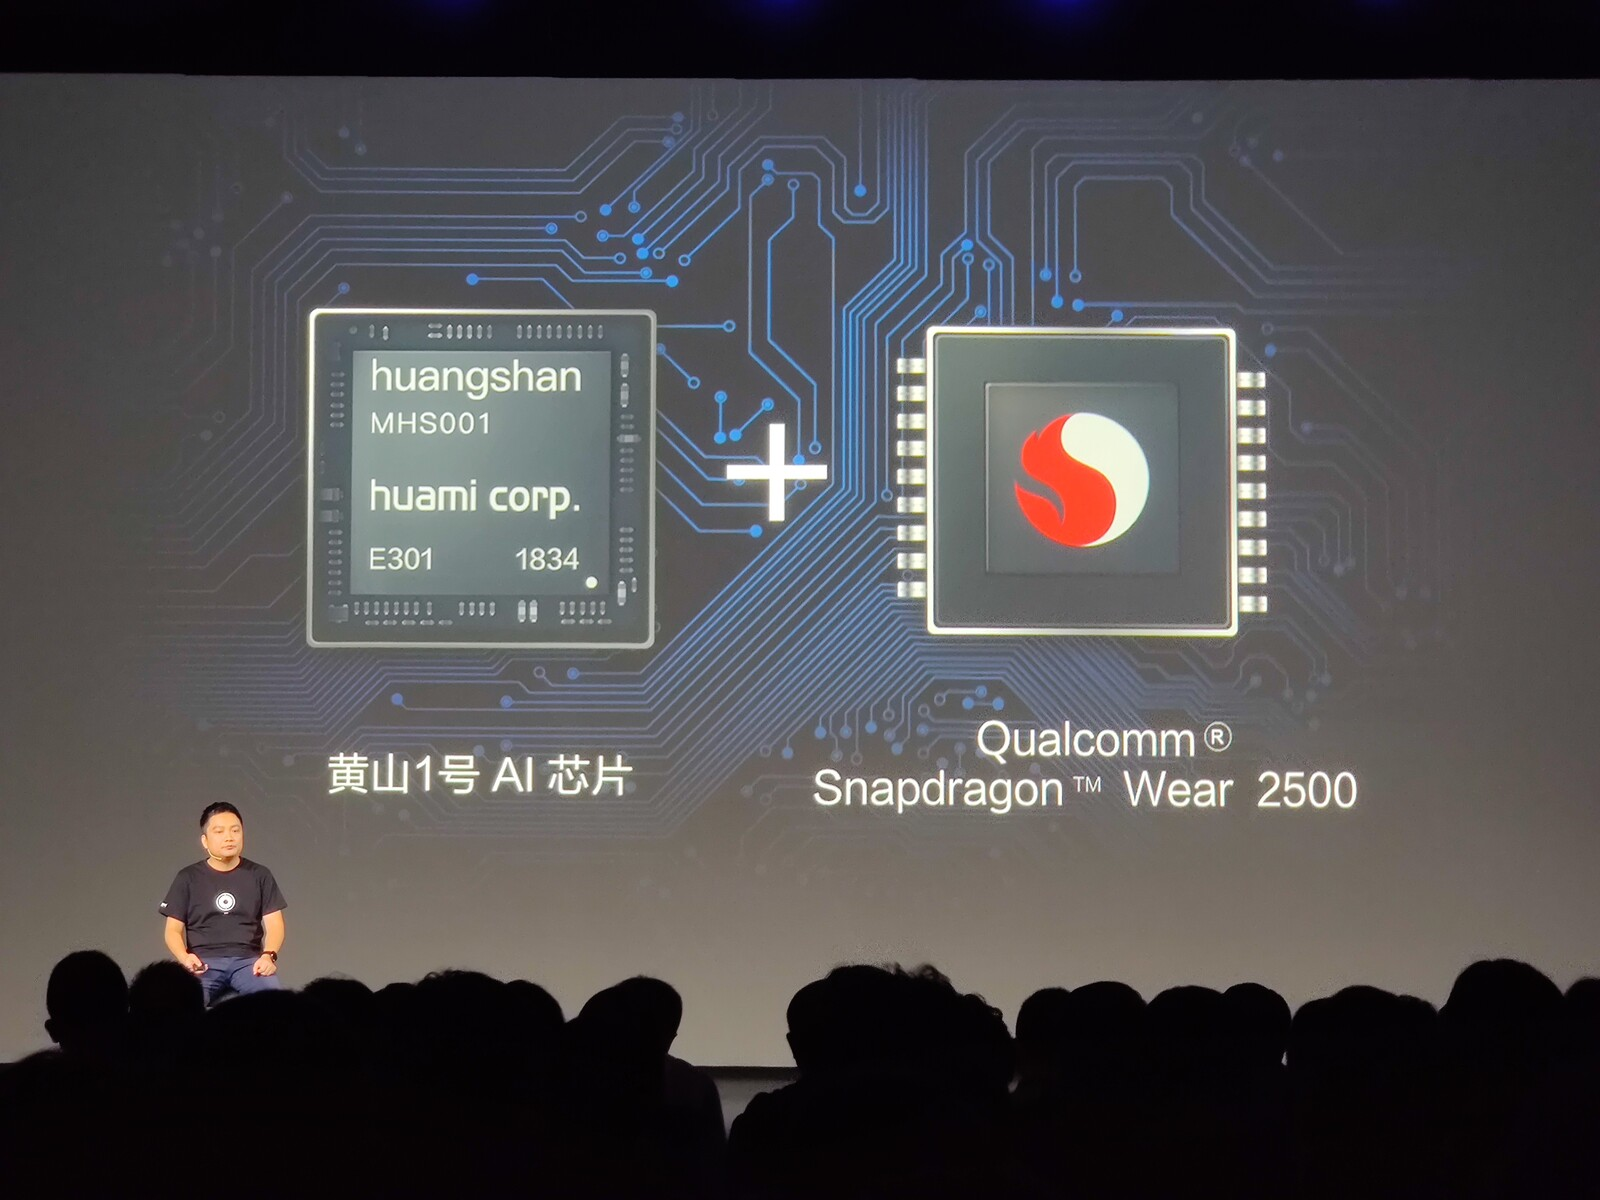 android 4.0 touchscreen idc